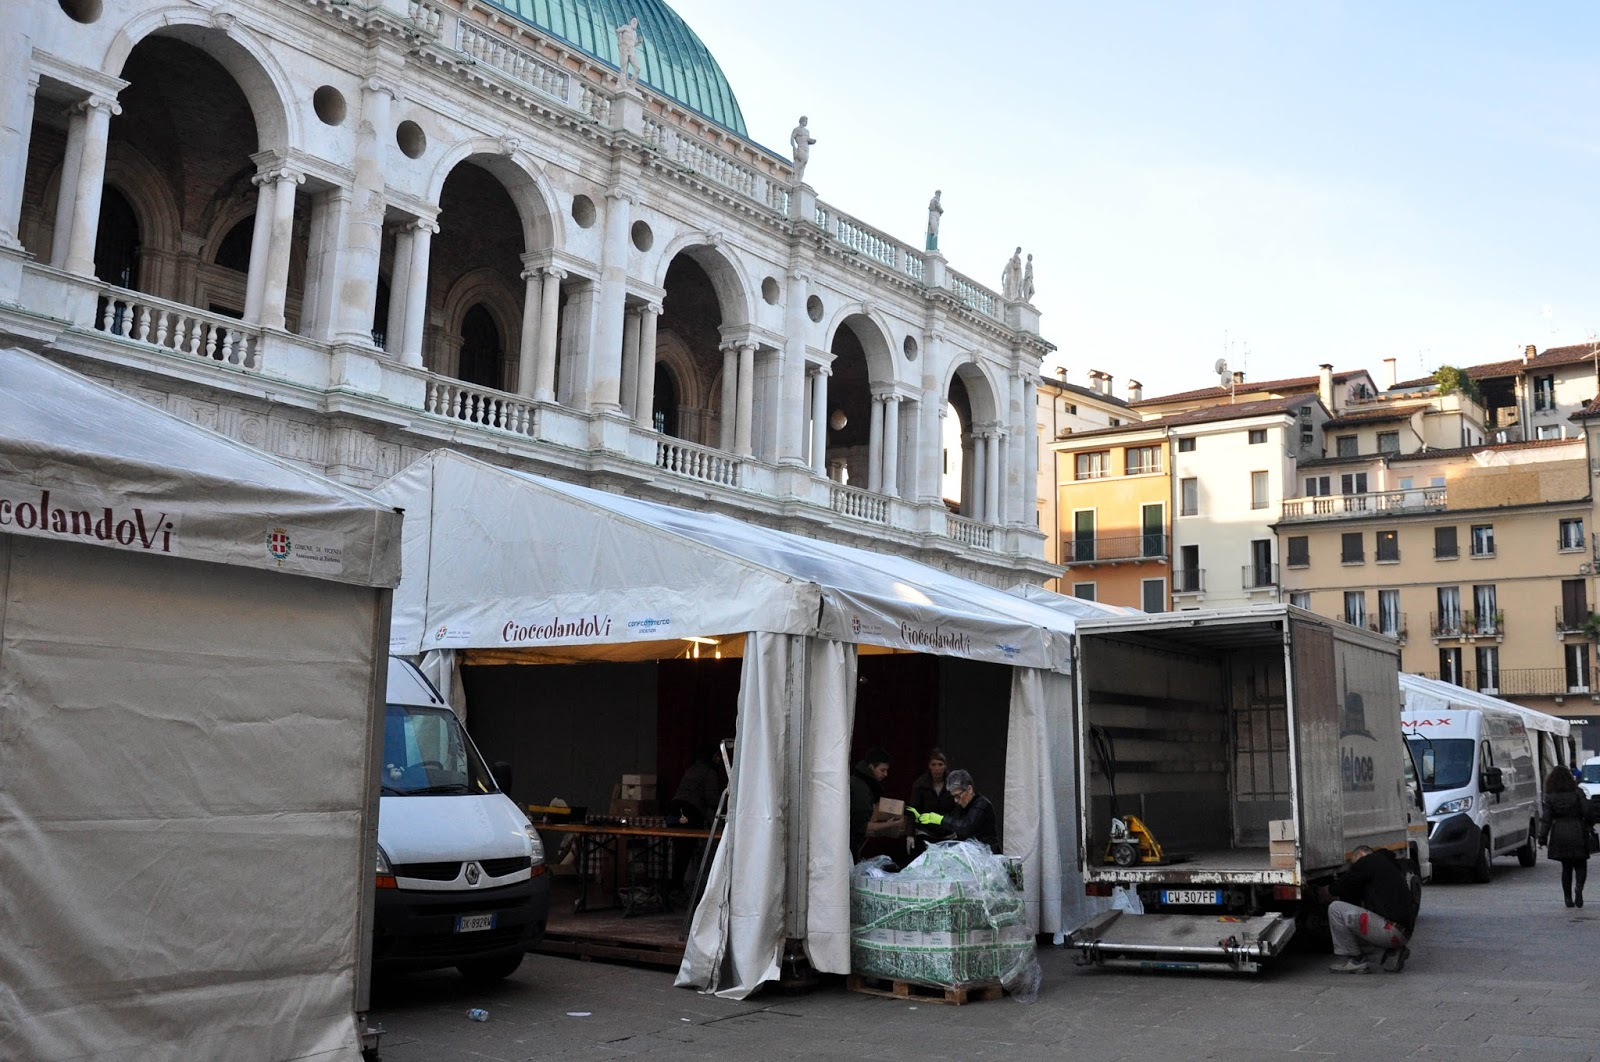 Getting ready, Chocolate Festival, Piazza dei Signori, Vicenza, Veneto, Italy